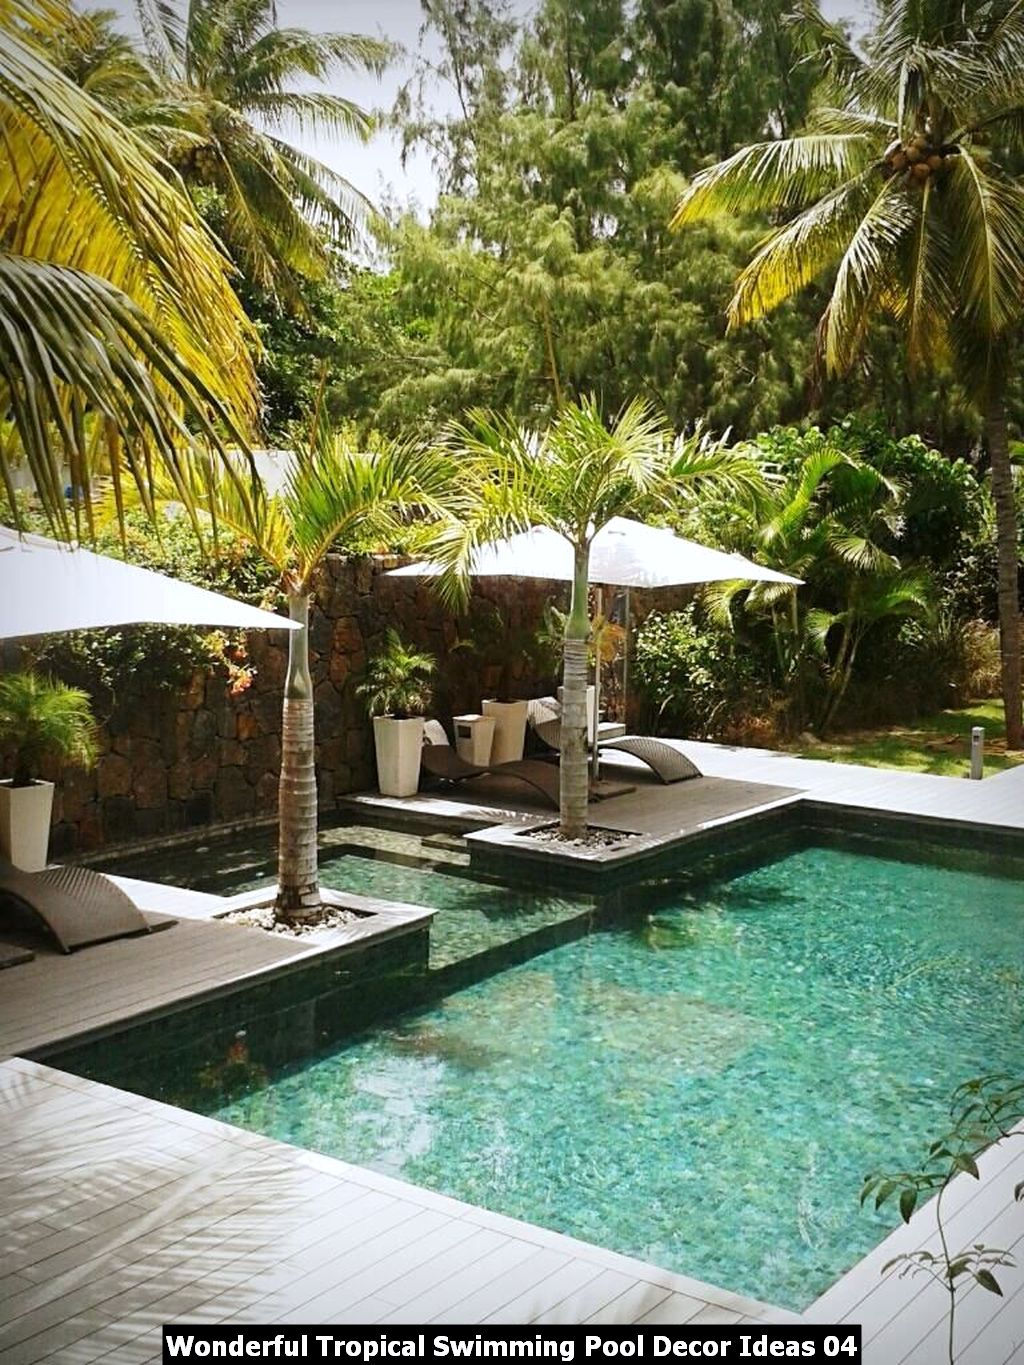 Wonderful Tropical Swimming Pool Decor Ideas 04